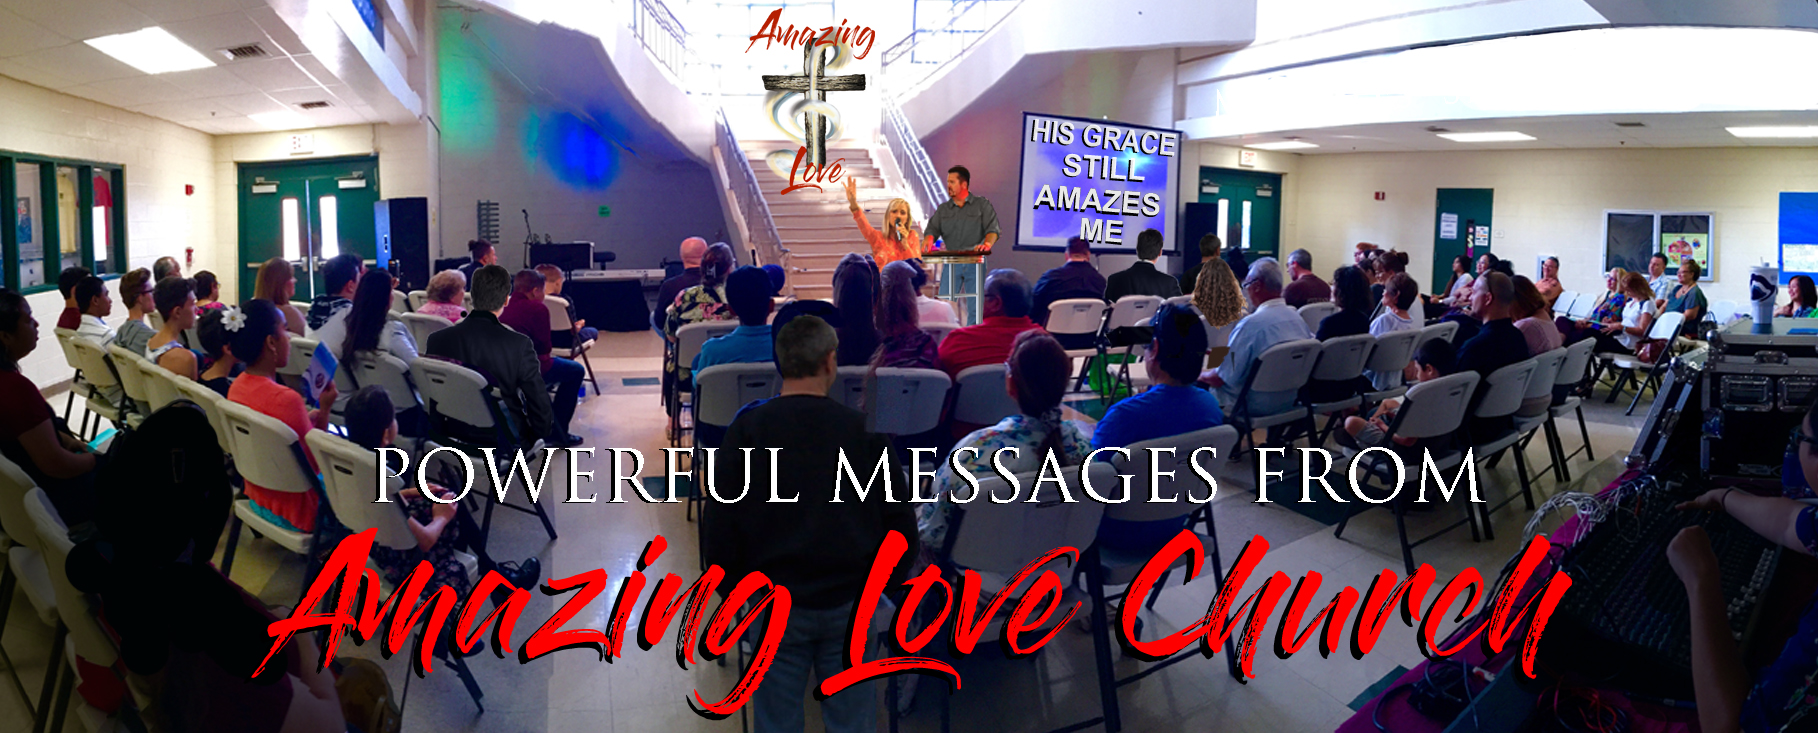 SQ_Powerful_Messages_From_Amazing Love Church - Congregation pic .jpg